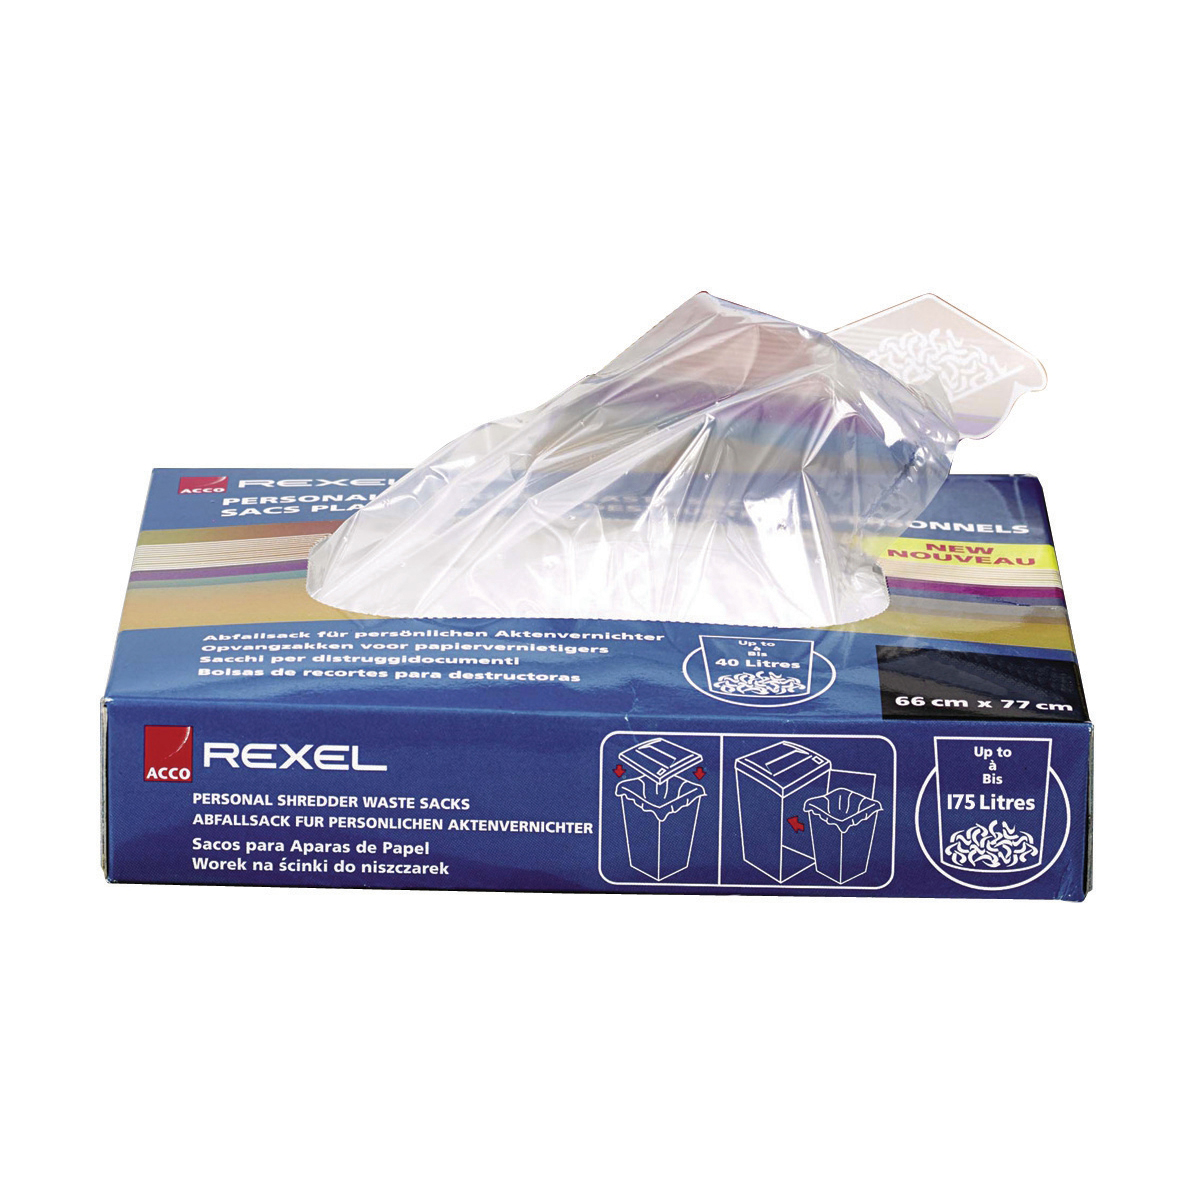 Bags / Sacks Rexel Shredder Waste Sacks 115 Litres Ref 40070 Pack 100